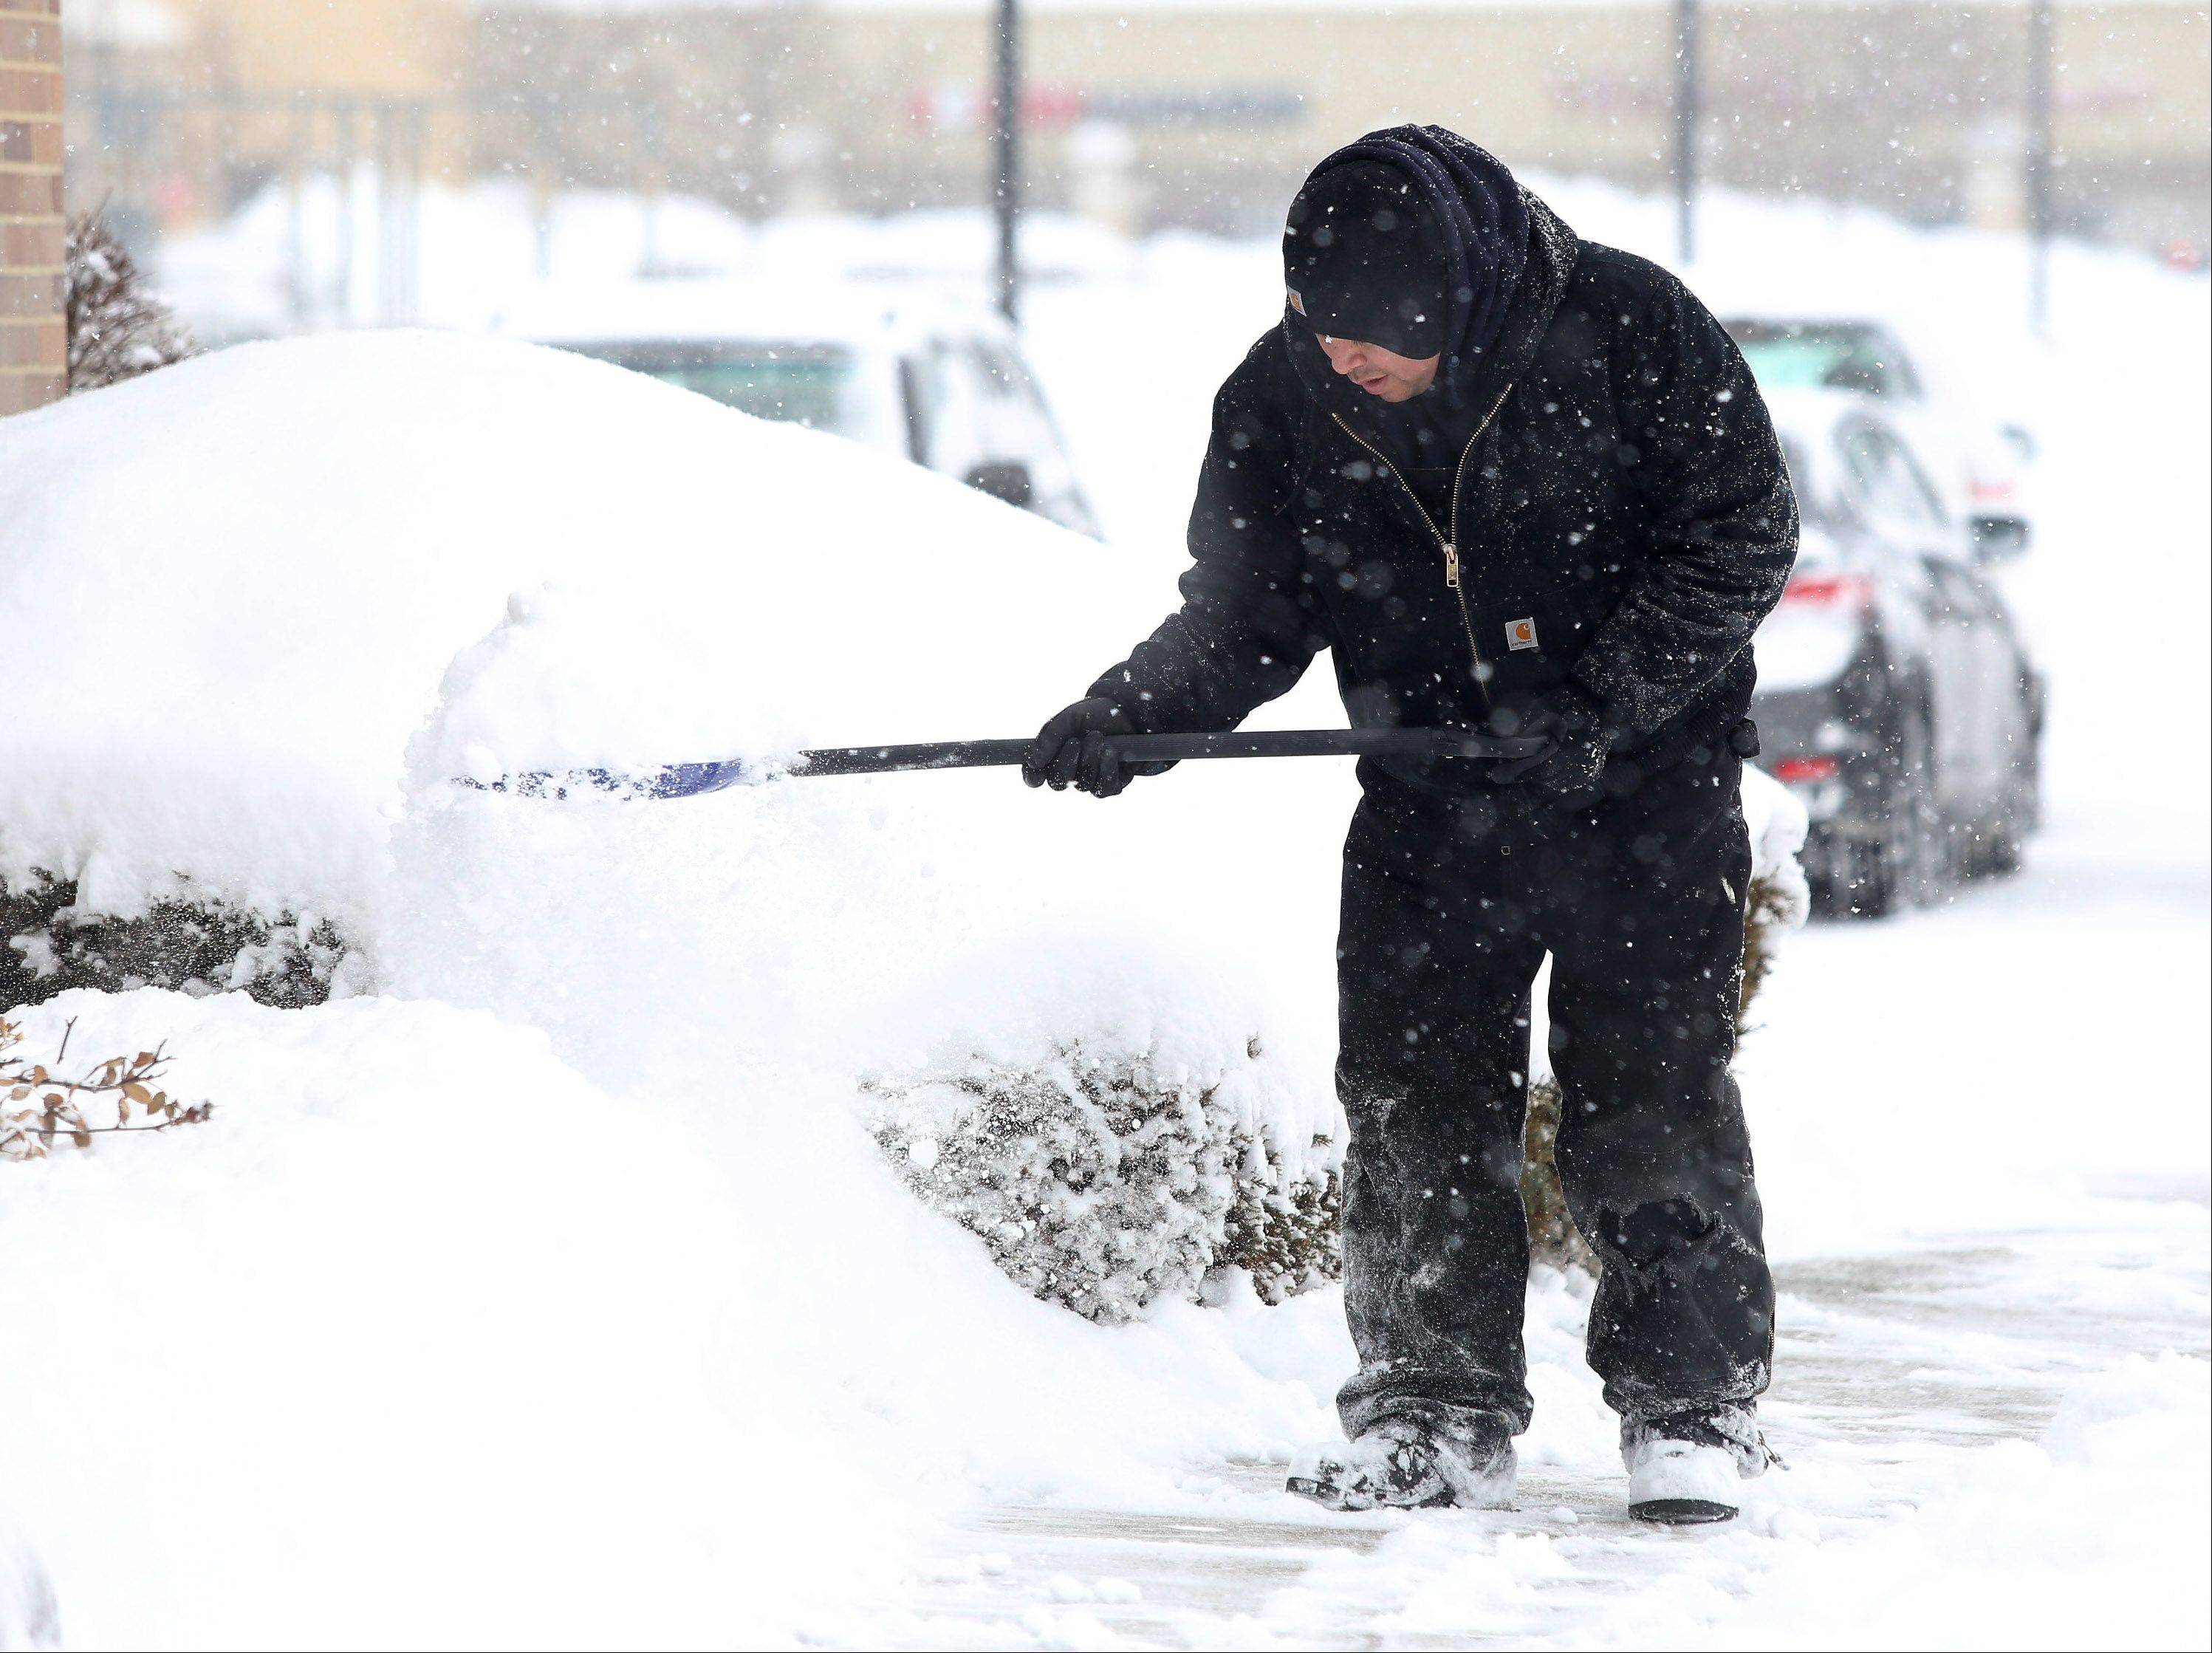 Pedro Castrejon of Martin & Associates Landscaping shovels sidewalks in front of businesses in Woodland Commons in Buffalo Grove on Wednesday. The overnight snowstorm forced area residents to once again dig out their driveways and face morning traffic problems on commutes to work and school.